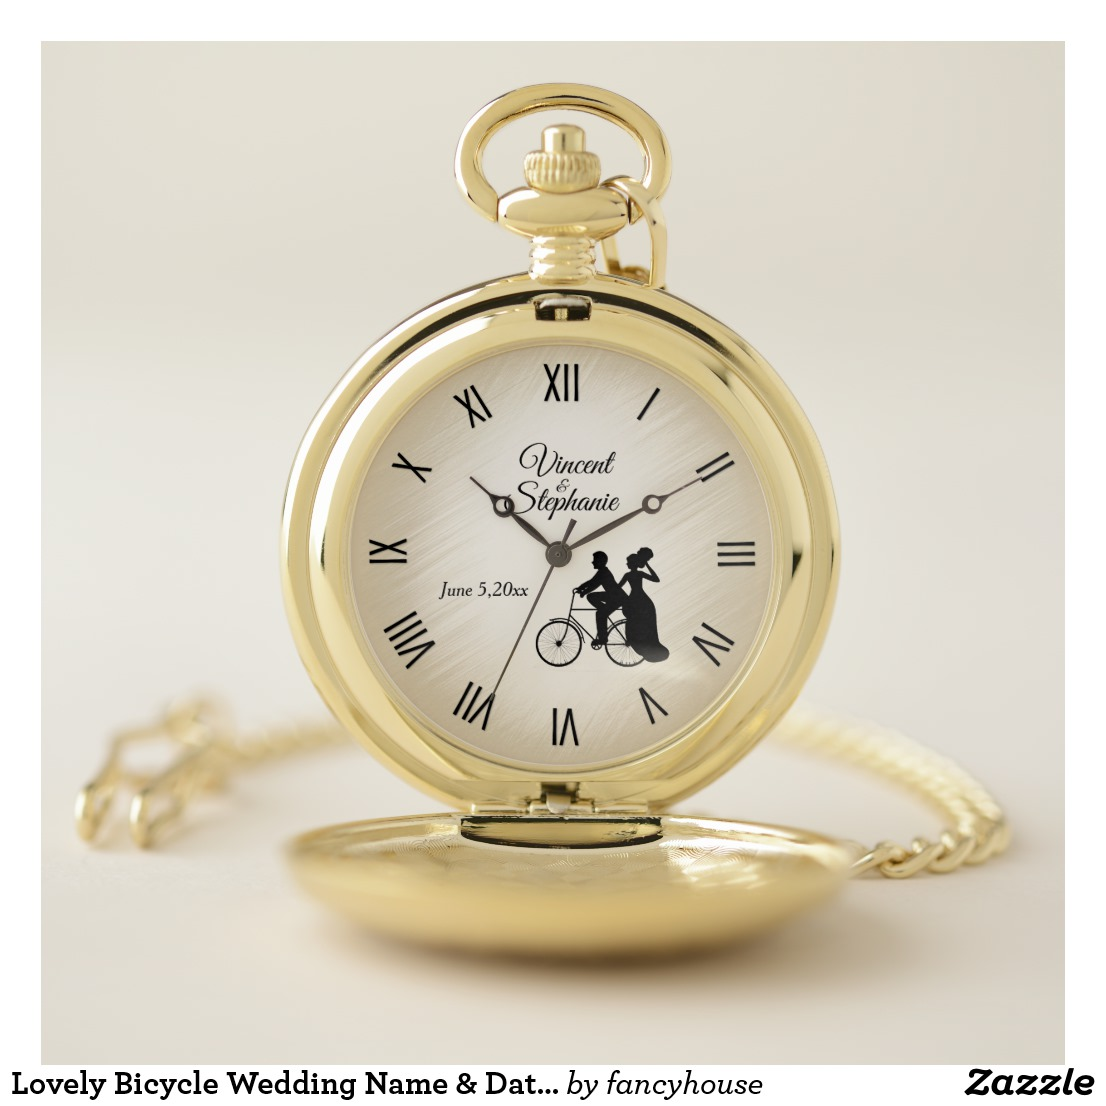 Lovely Bicycle Wedding Name & Date Roman Numerals Pocket Watch